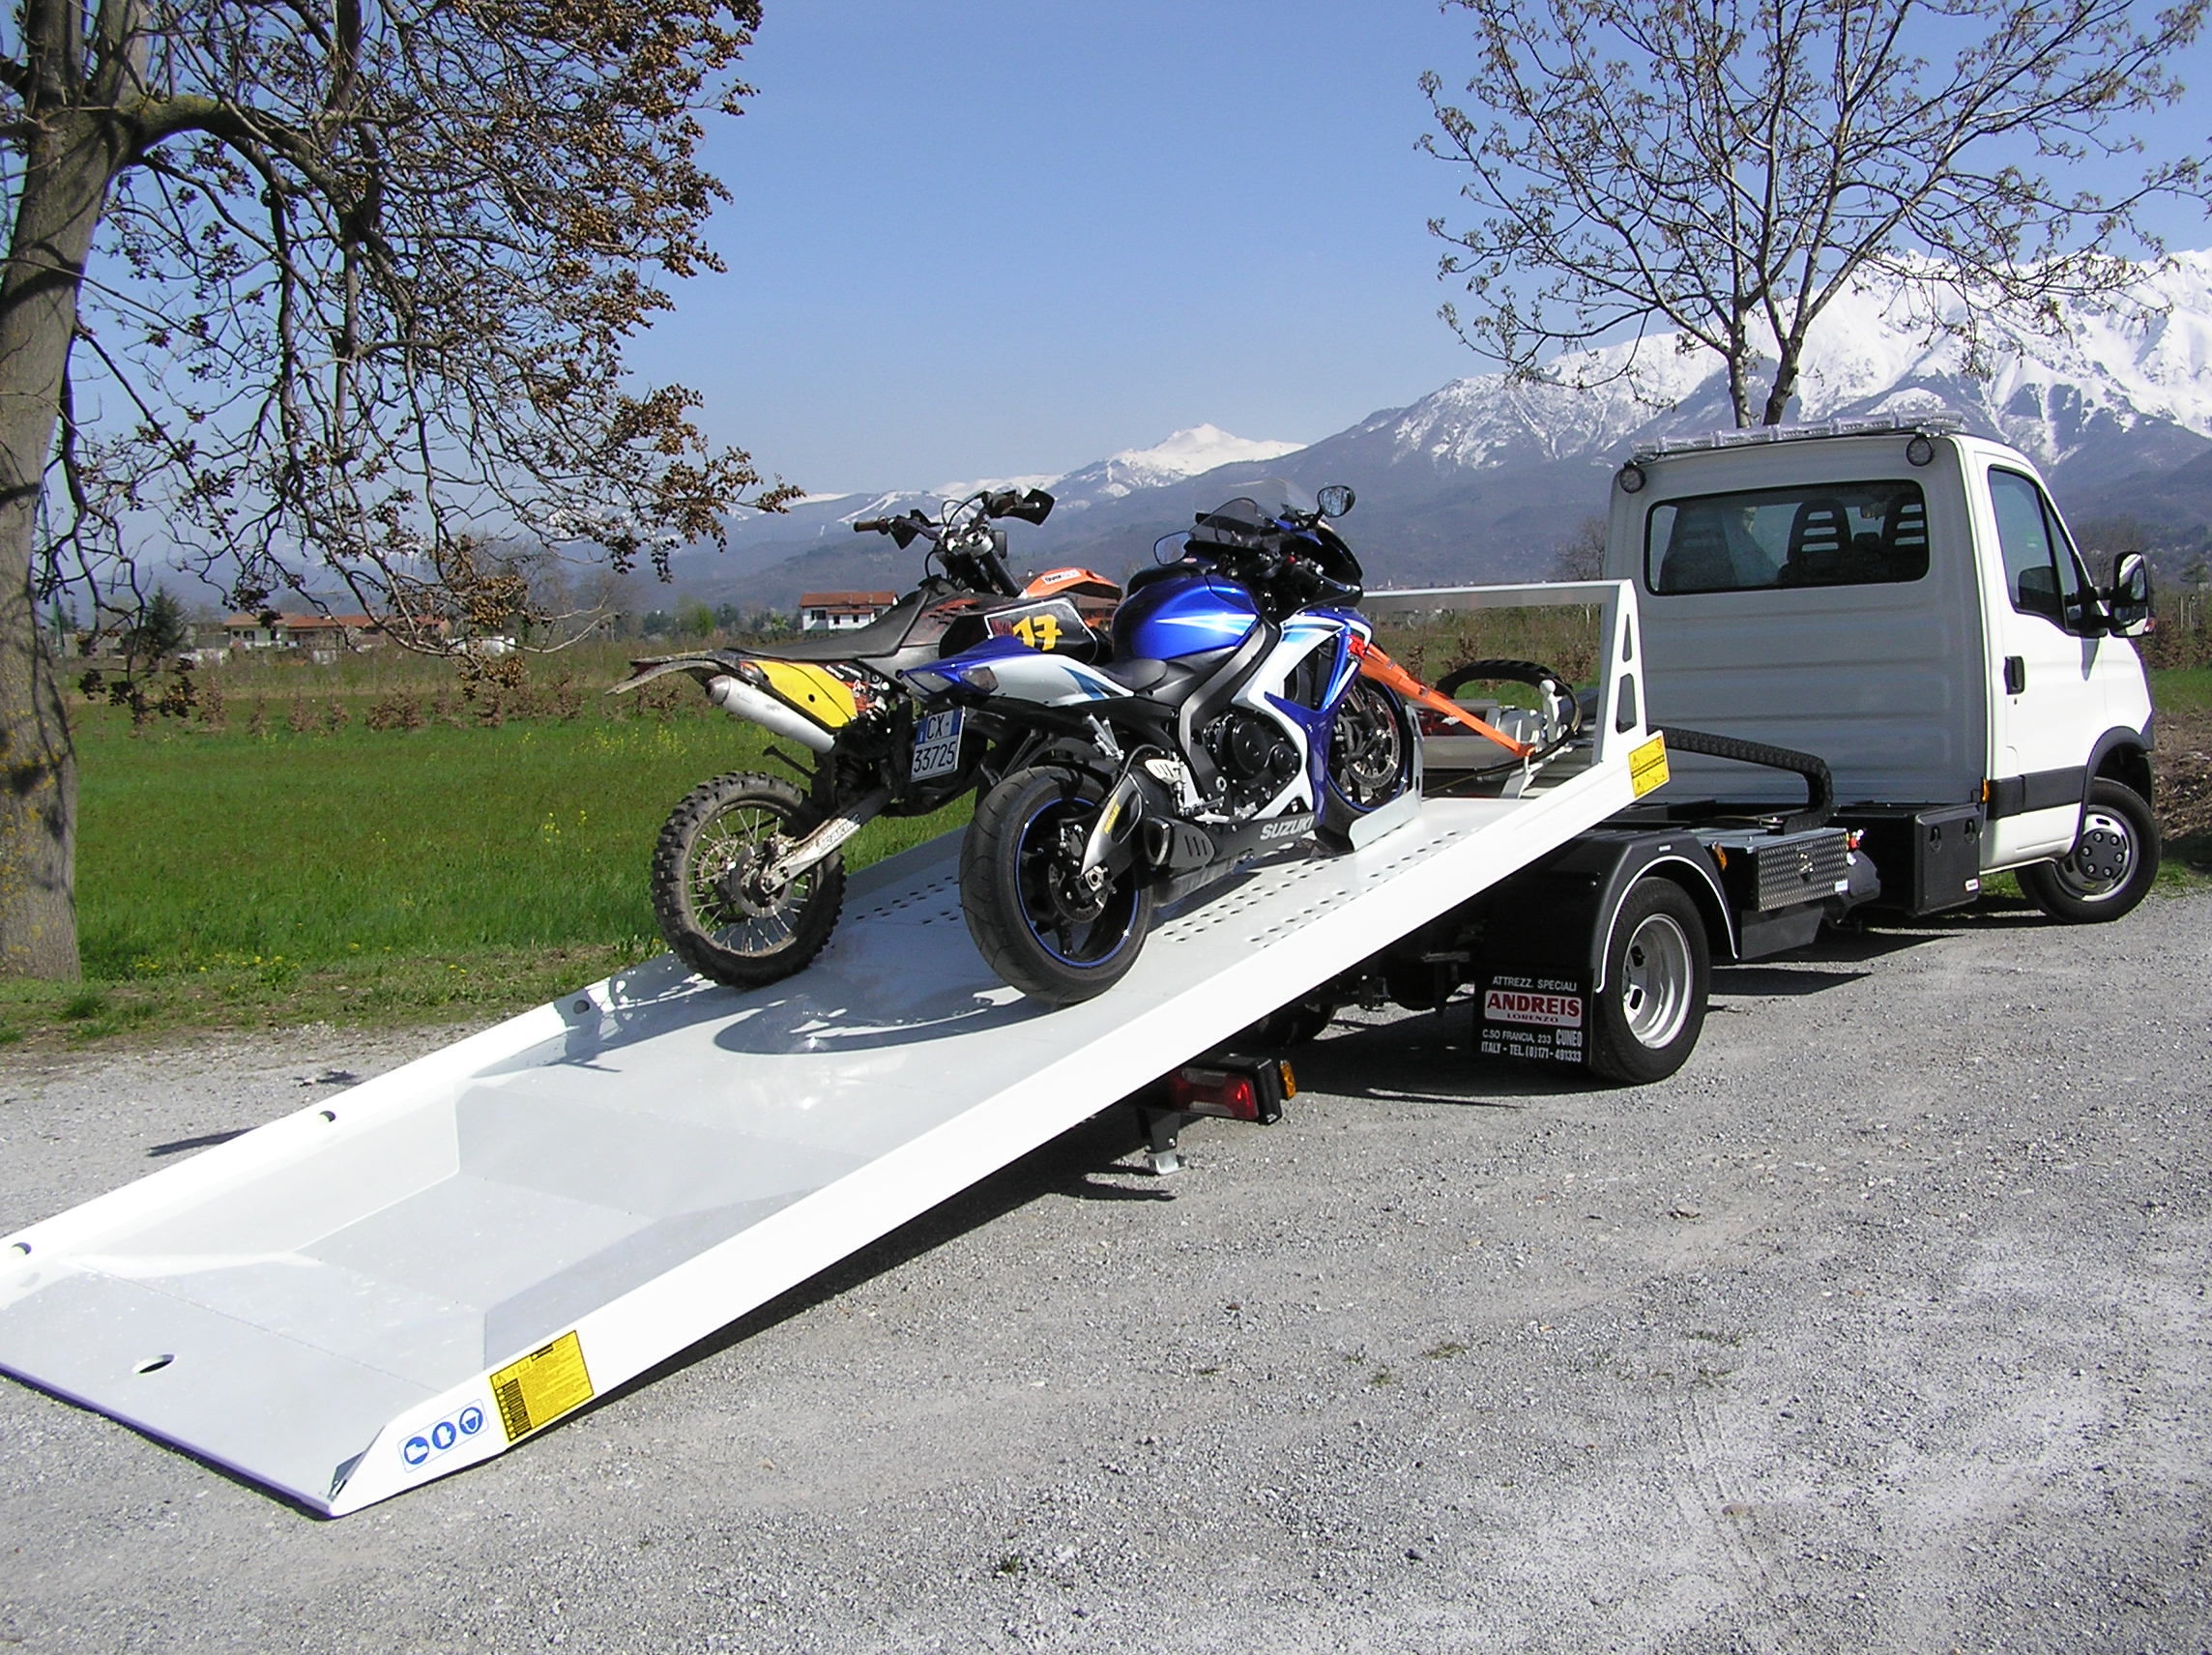 motorcycle flatbed towing